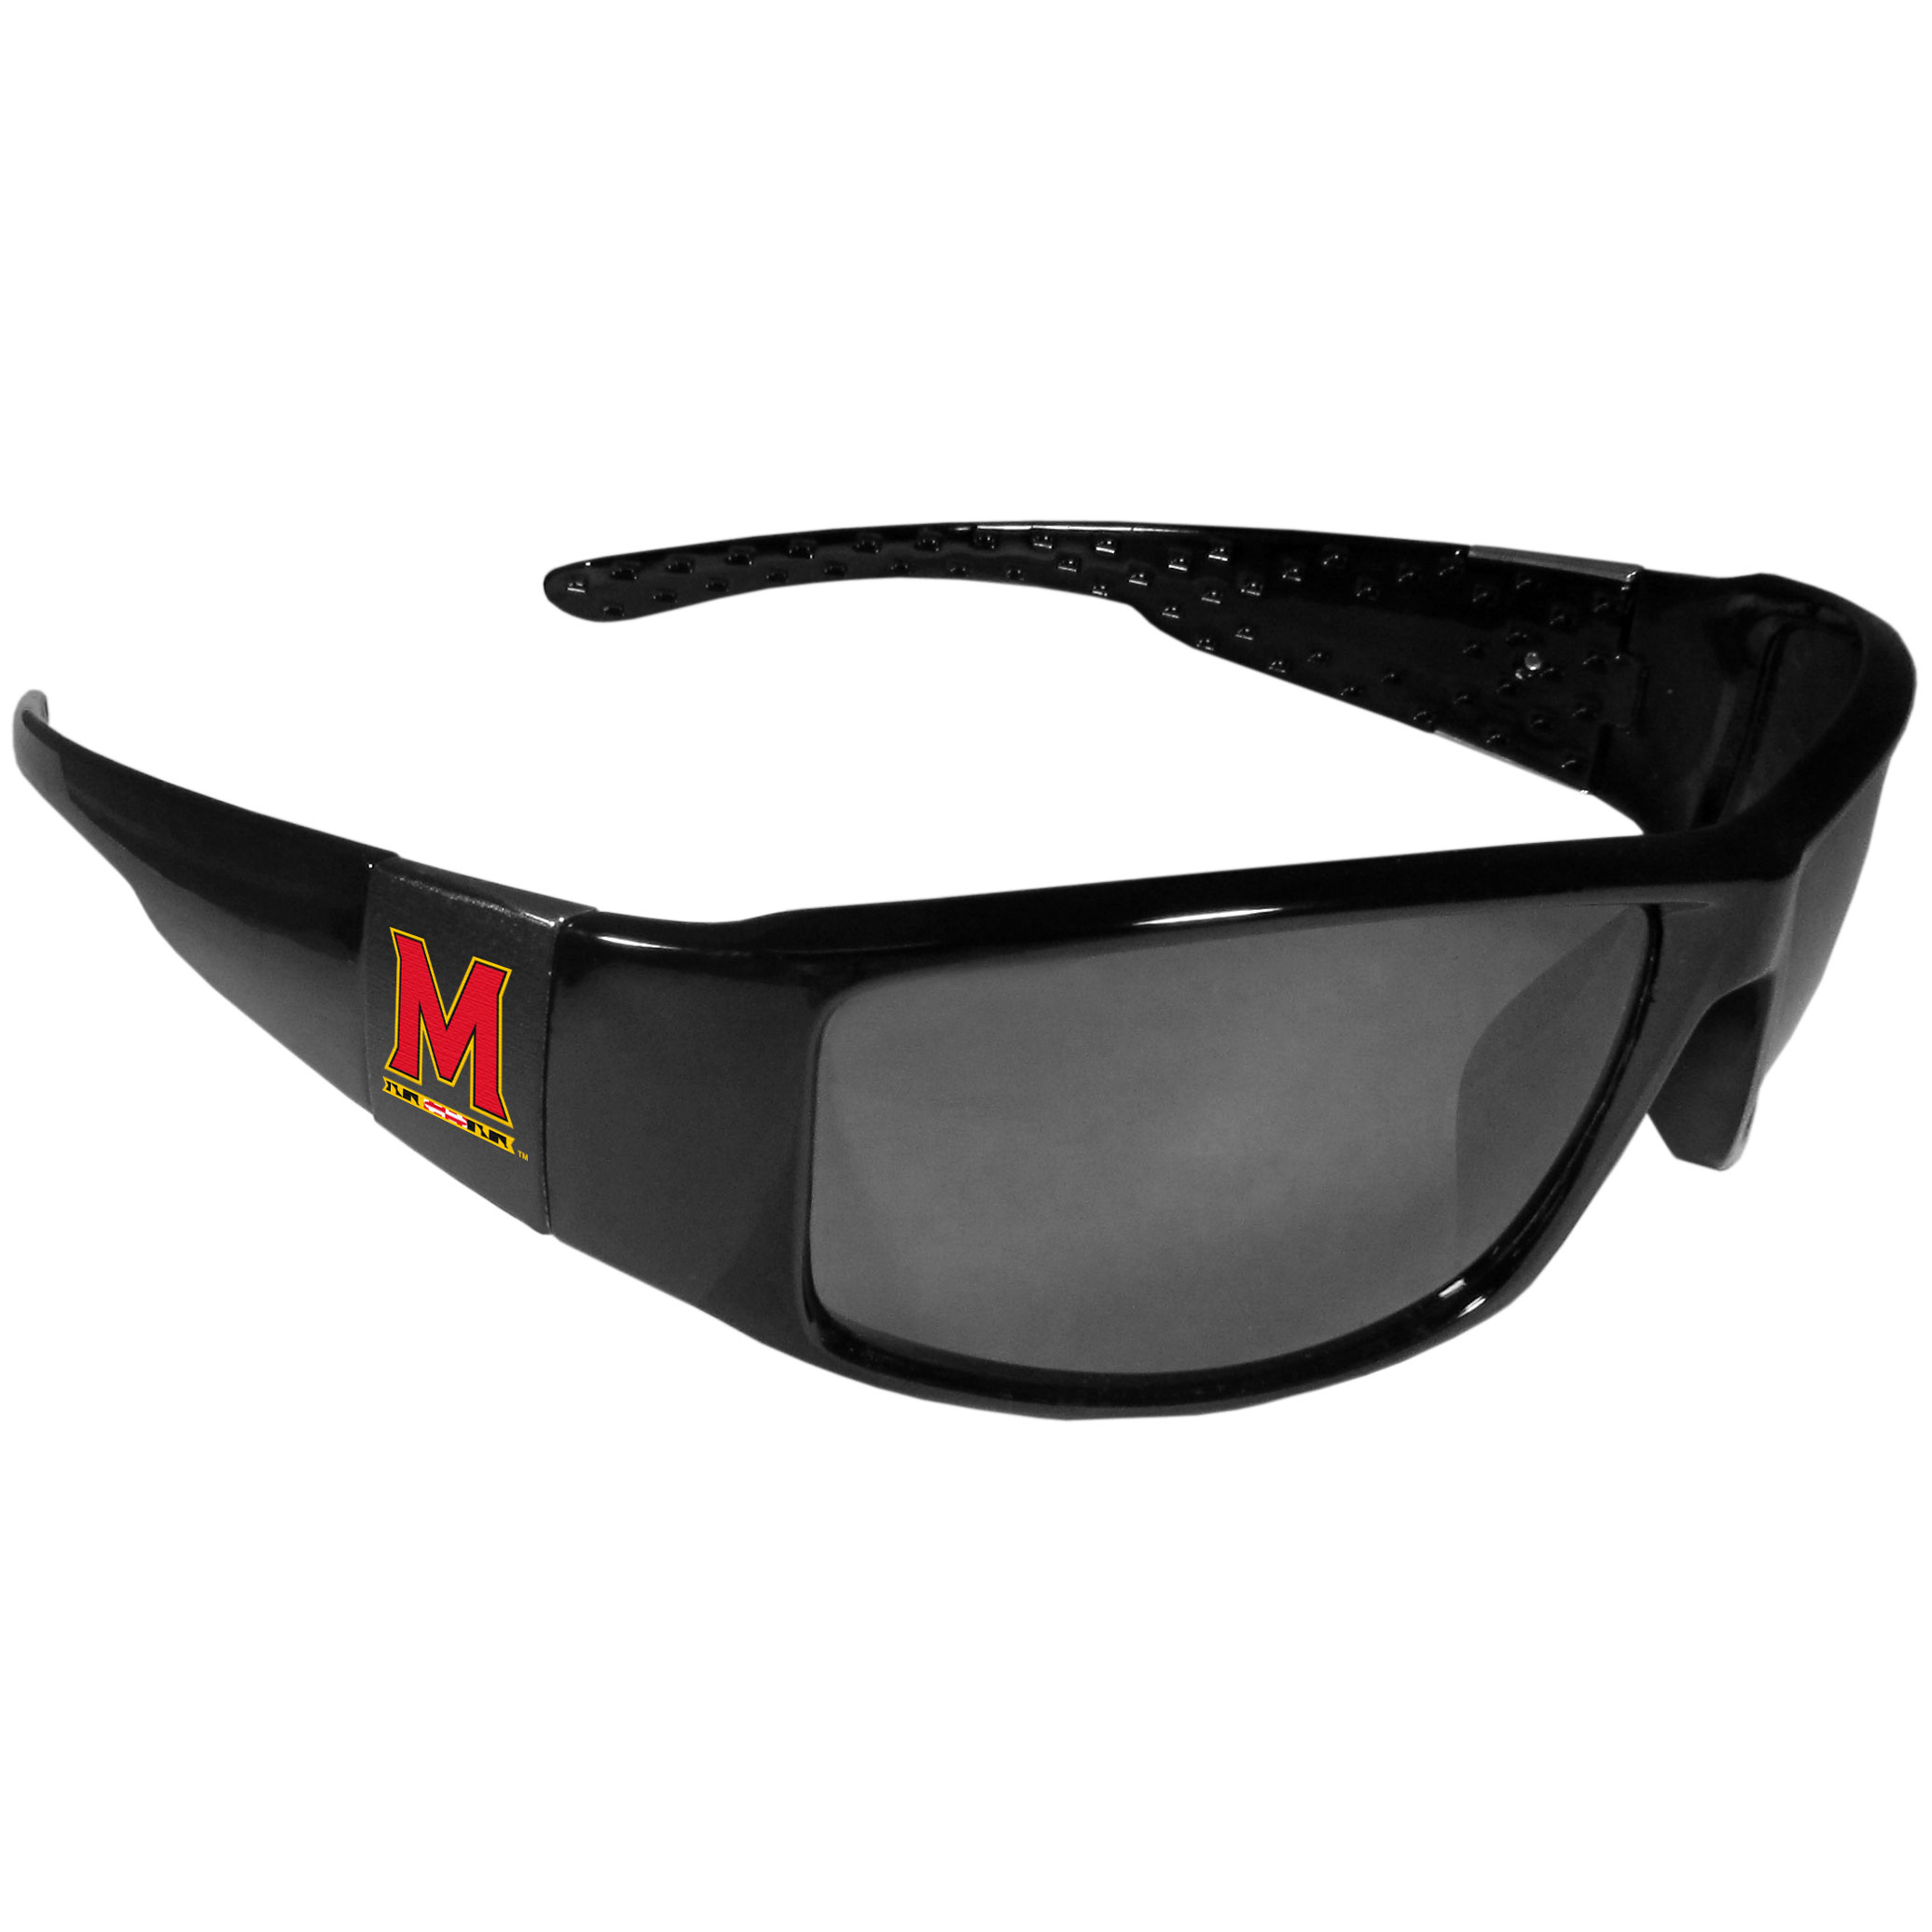 Maryland Terrapins Black Wrap Sunglasses - These designer inspired frames have a sleek look in all black with  Maryland Terrapins shields on each arm with a printed logo. The shades are perfect for any outdoor activity like; golfing, driving, hiking, fishing or cheering on the team at a tailgating event or at a home game day BBQ with a lens rating of 100% UVA/UVB for maximum UV protection. The high-quality frames are as durable as they are fashionable and with their classic look they are the perfect fan accessory that can be worn everyday for every occasion.